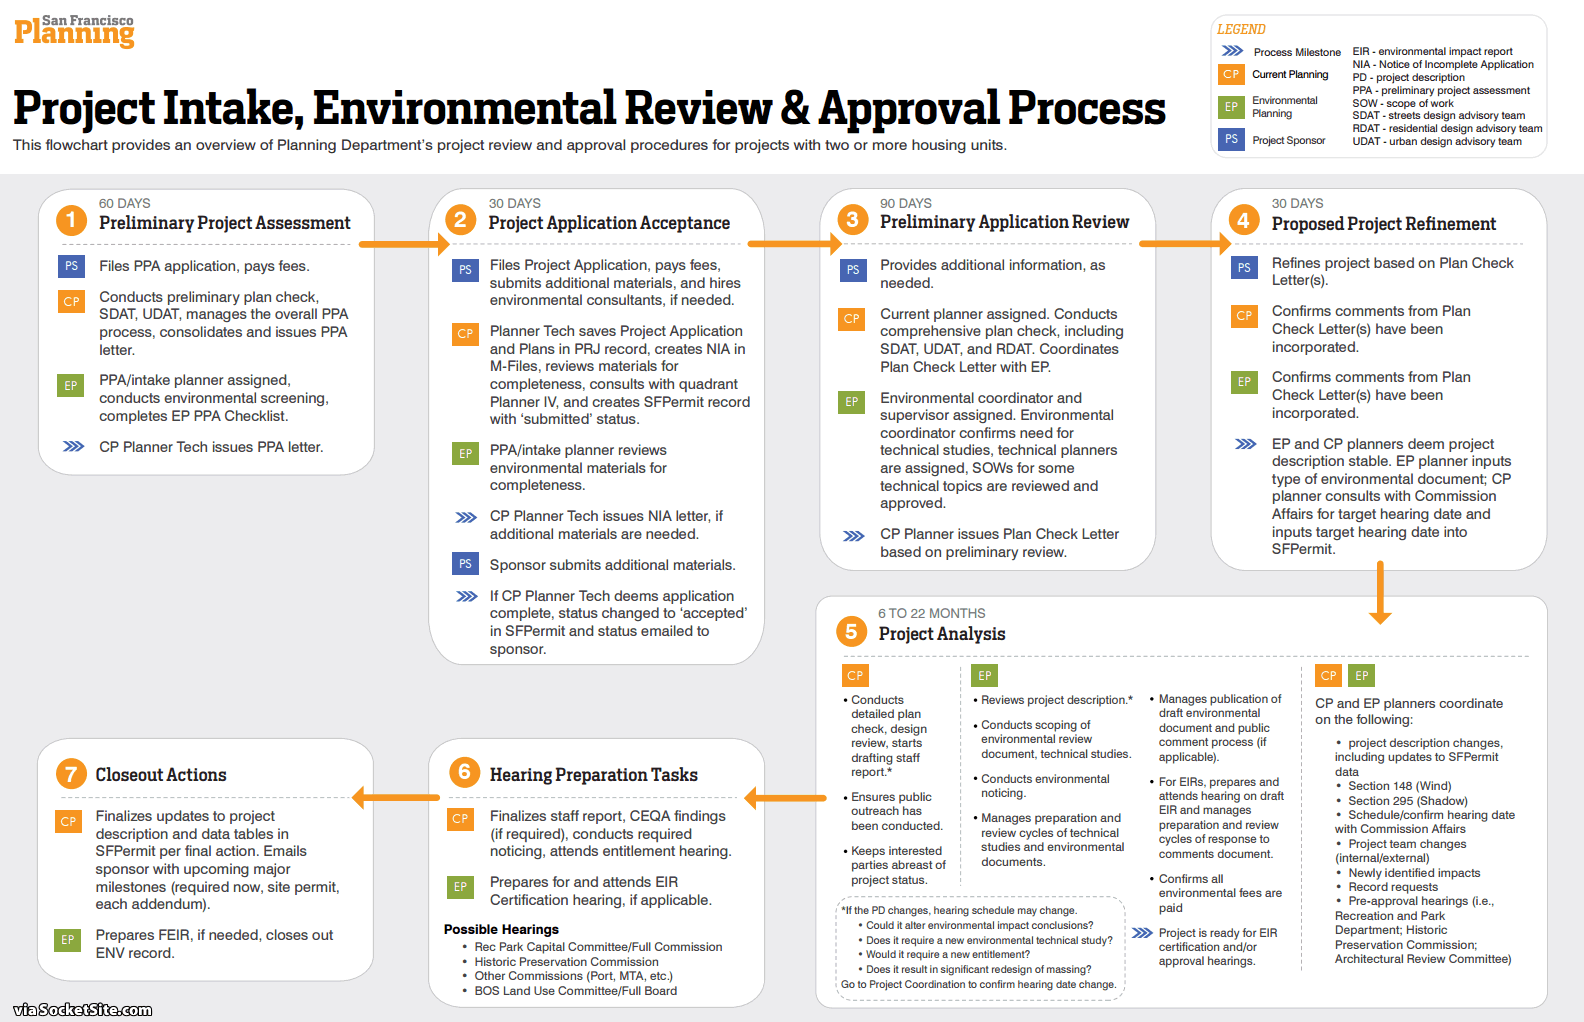 San Francisco's Streamlined Approval Process